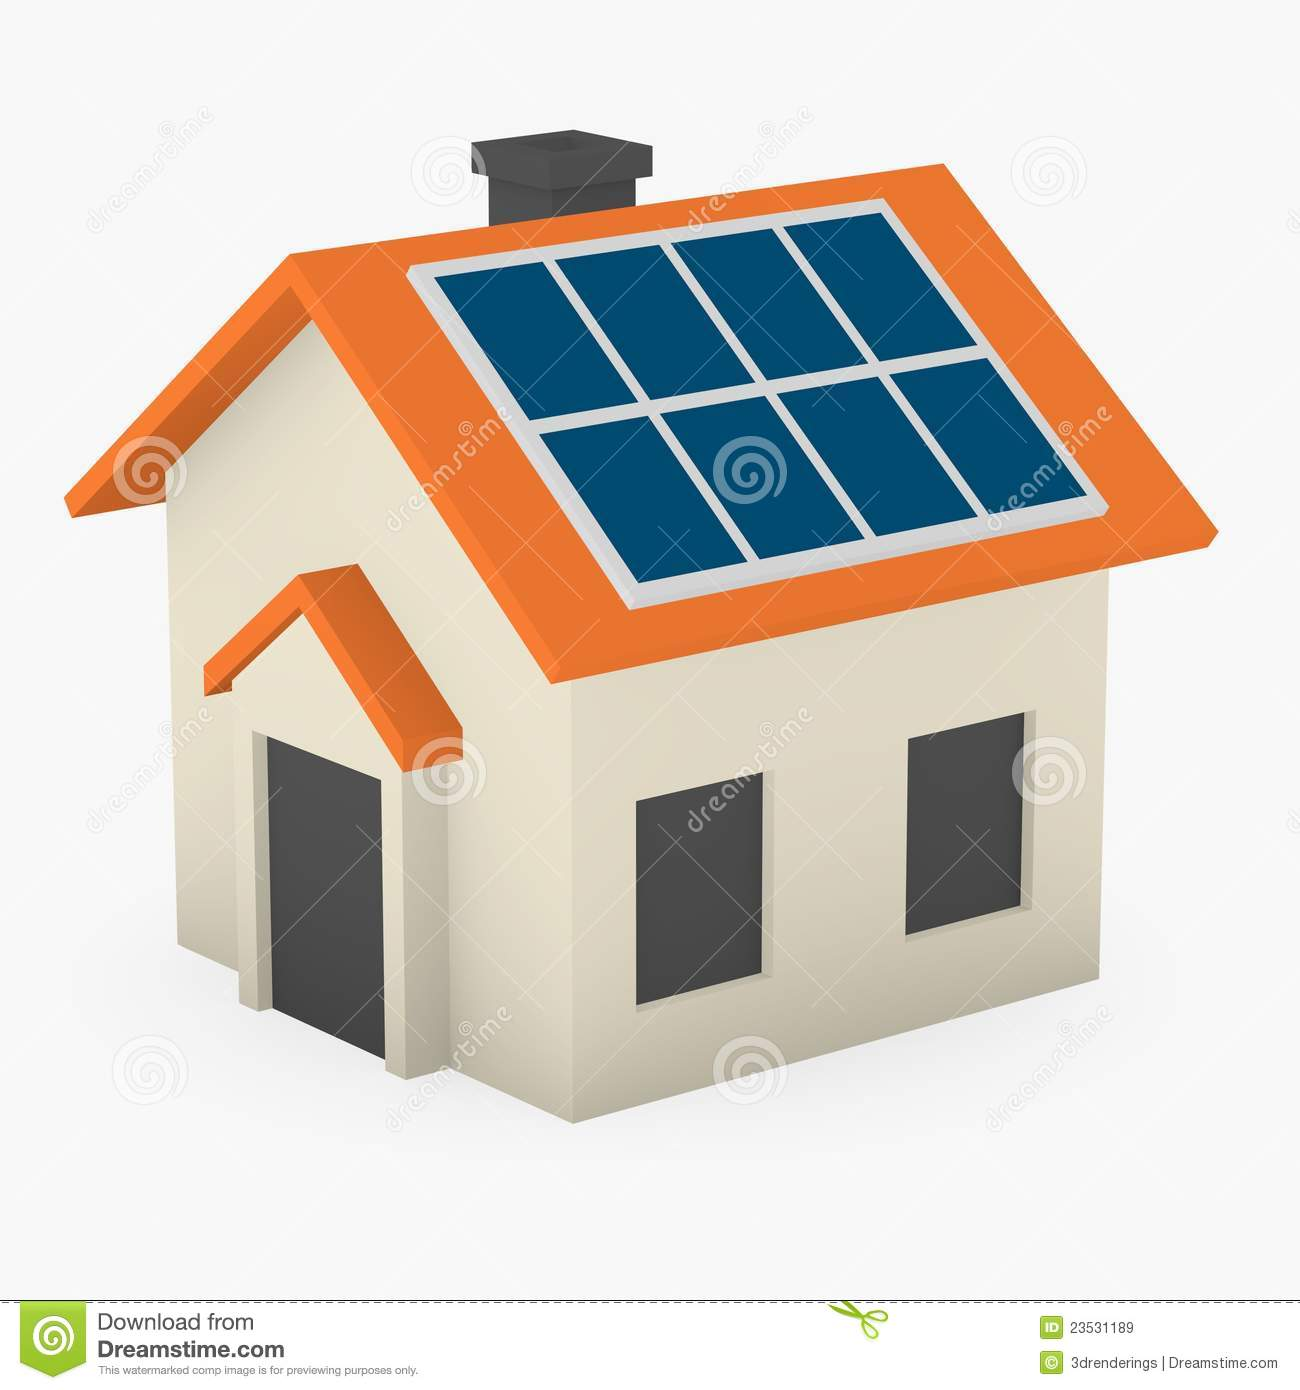 solar panel house clipart 20 free Cliparts | Download images